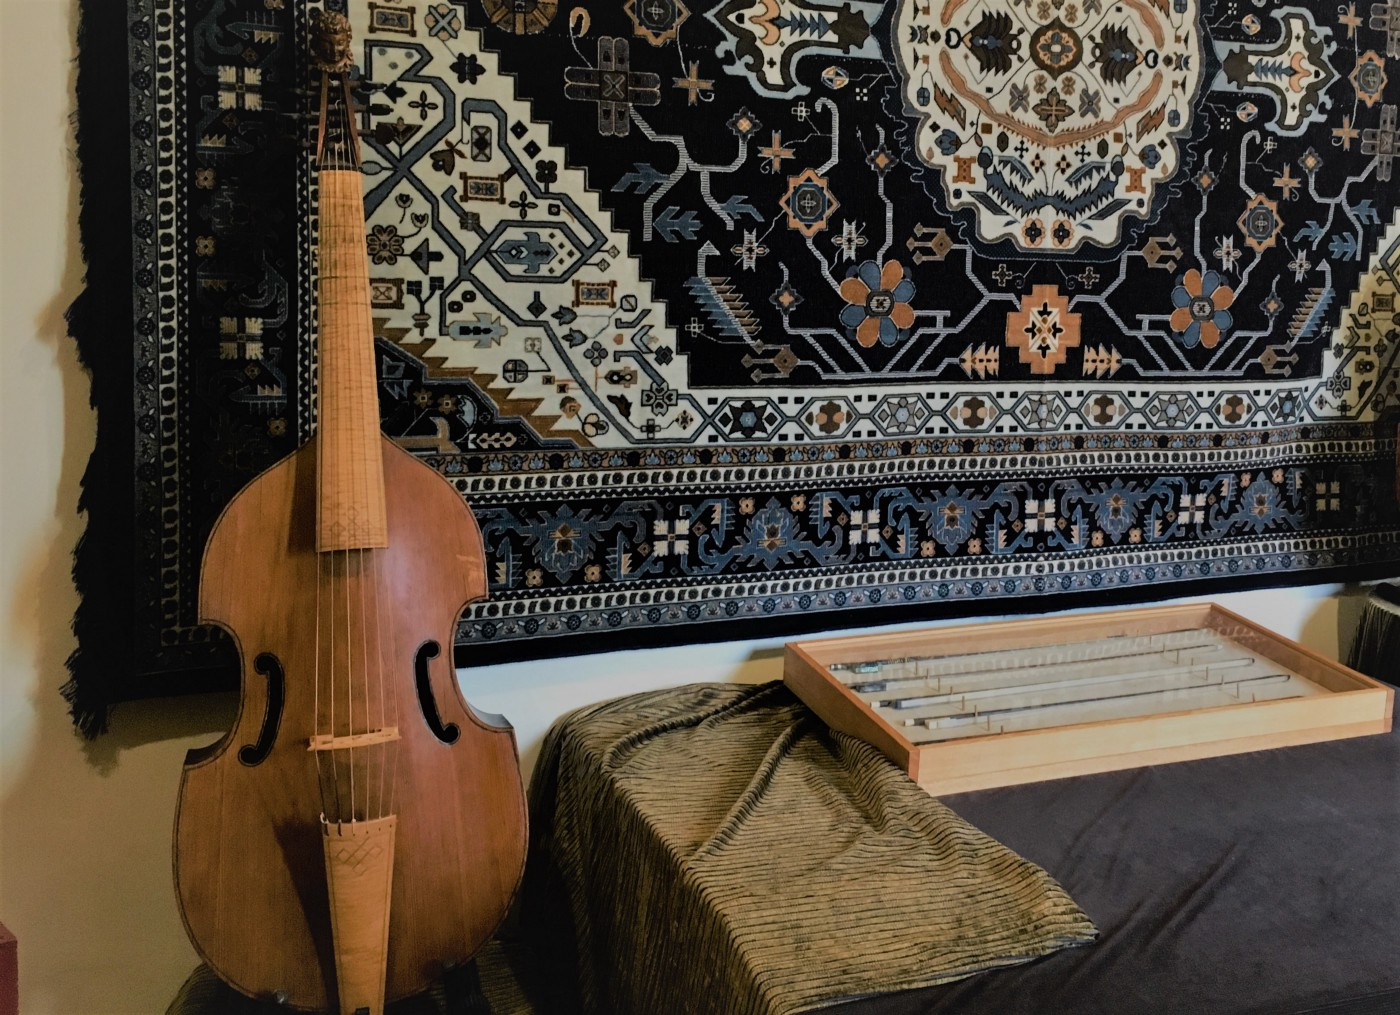 A photo of a viola da gamba, a cello-like instrument from the 15th and 16th centuries. In the background is a carpet-like tapestry and the table beside the instrument has a box with bows for the instrument.